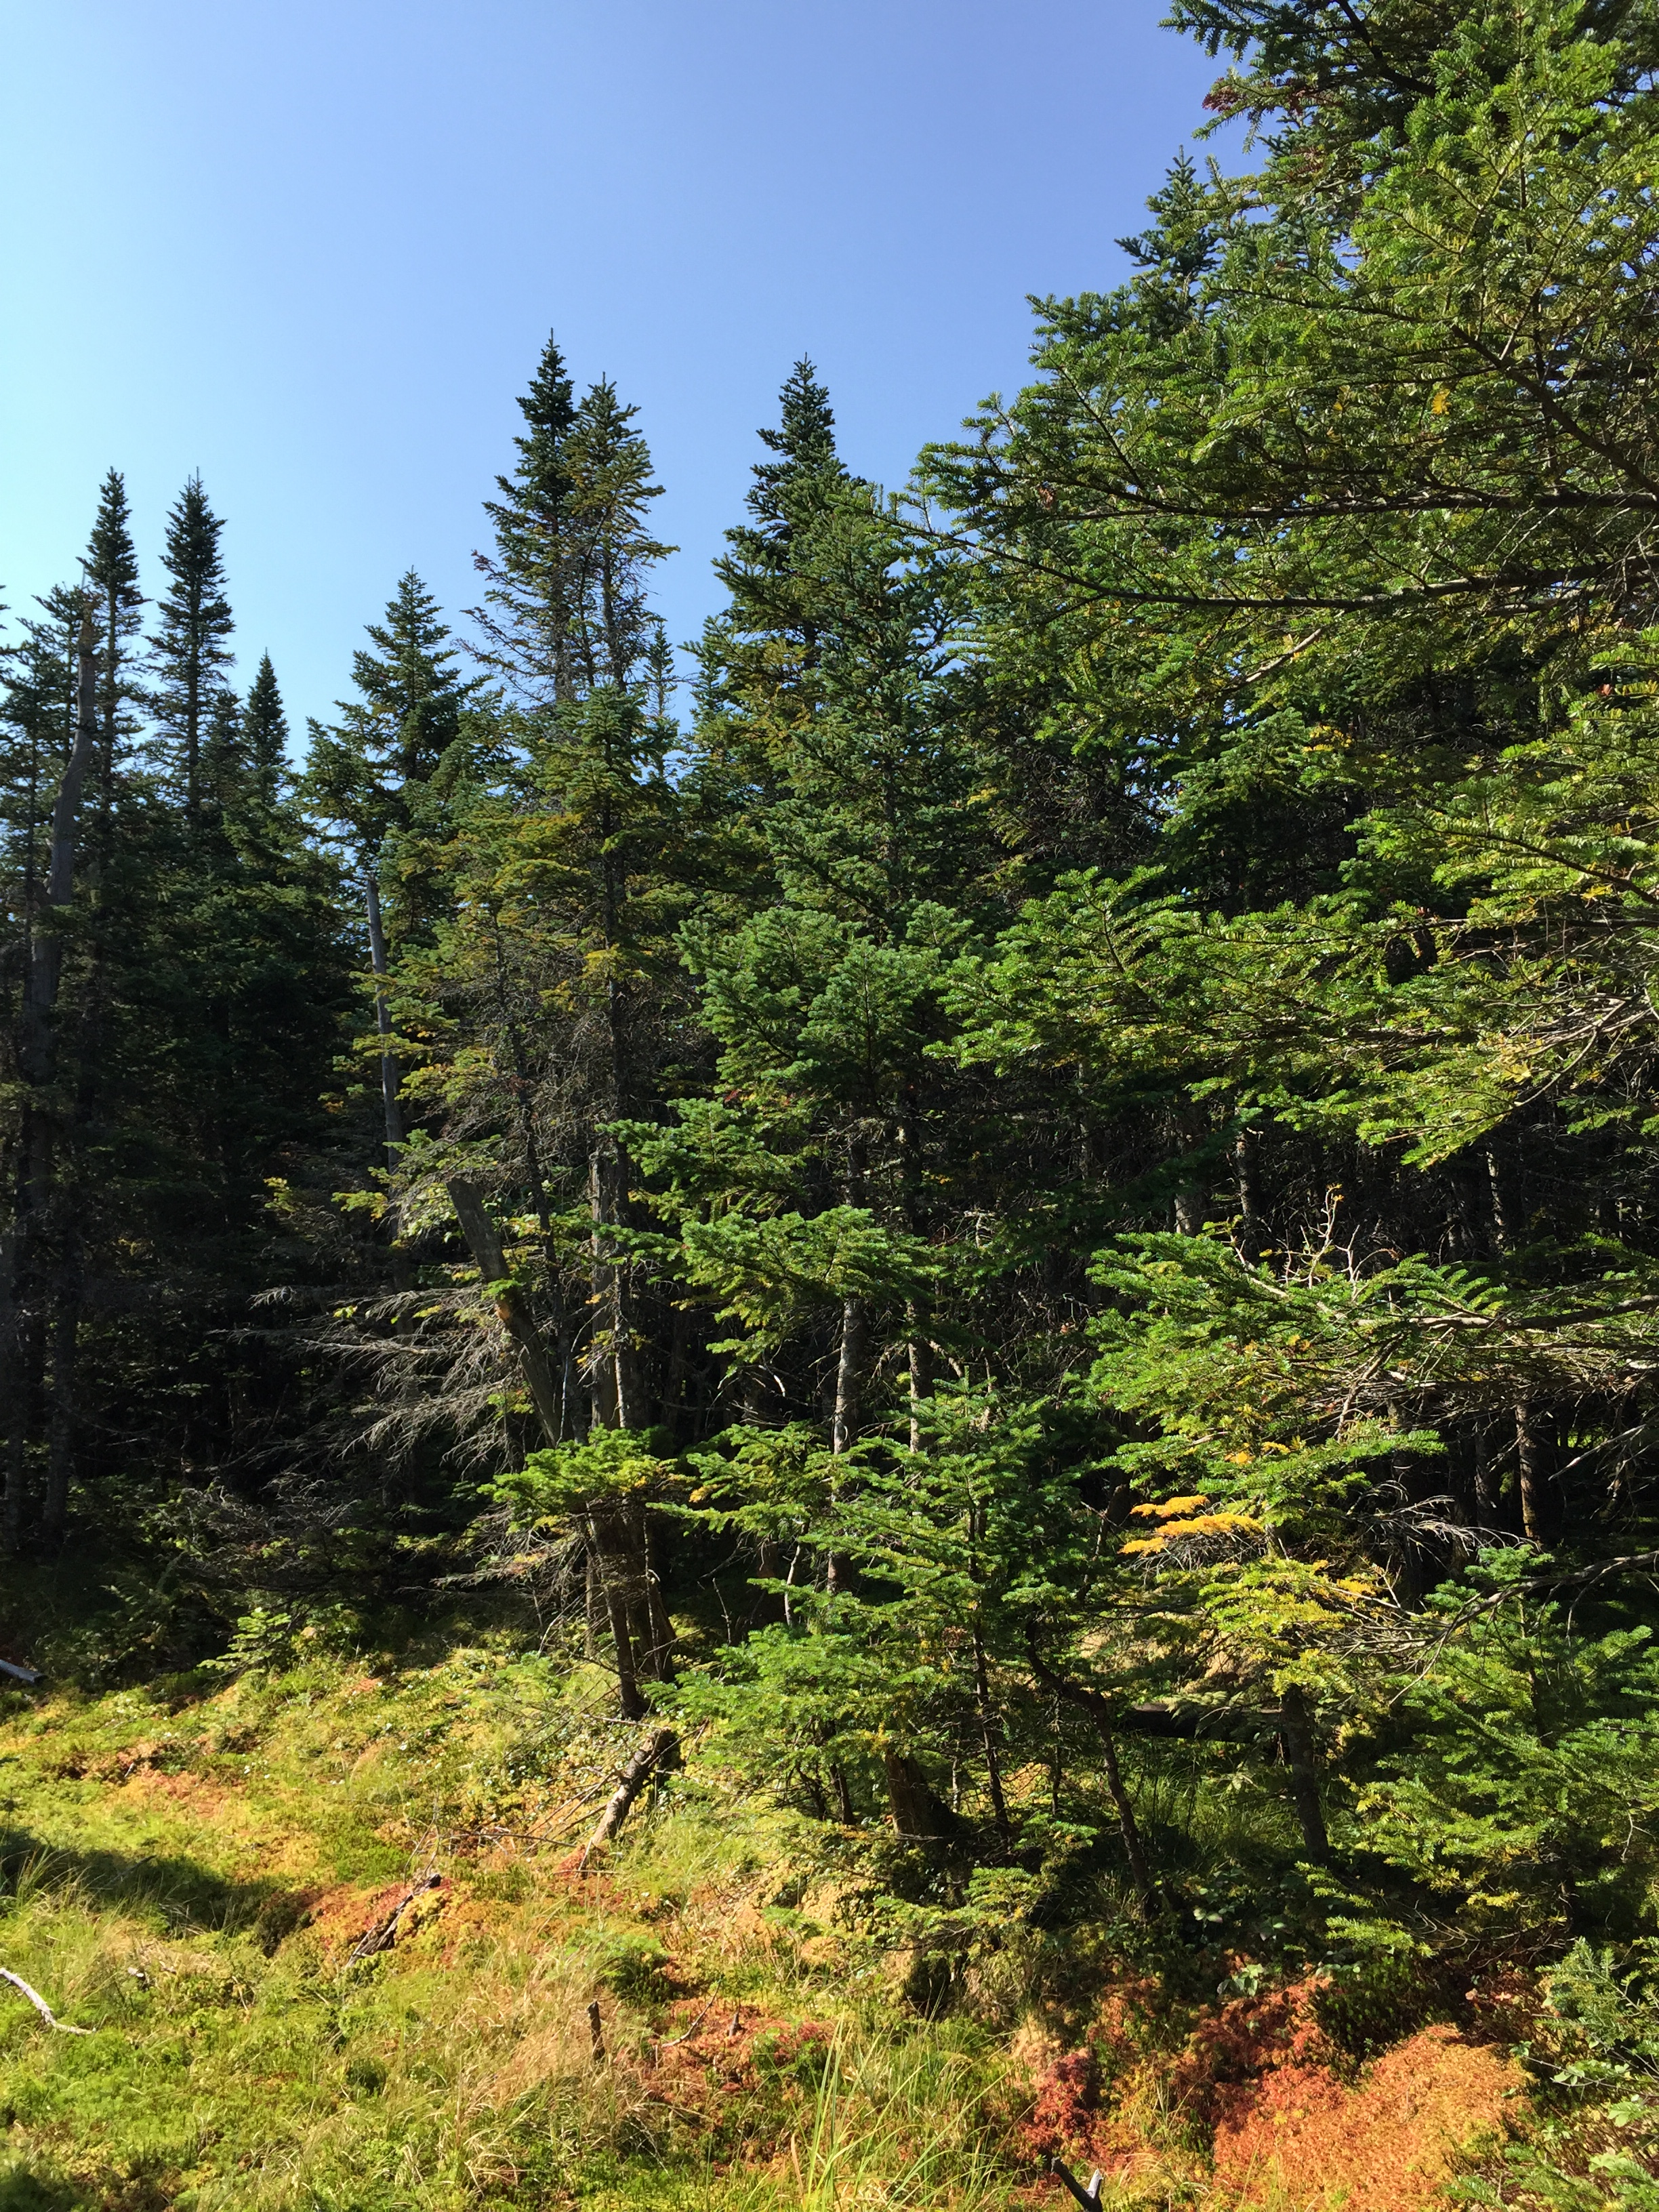 New york essex county keene - File 2016 09 04 10 24 25 Forest Along The Van Hoevenberg Trail